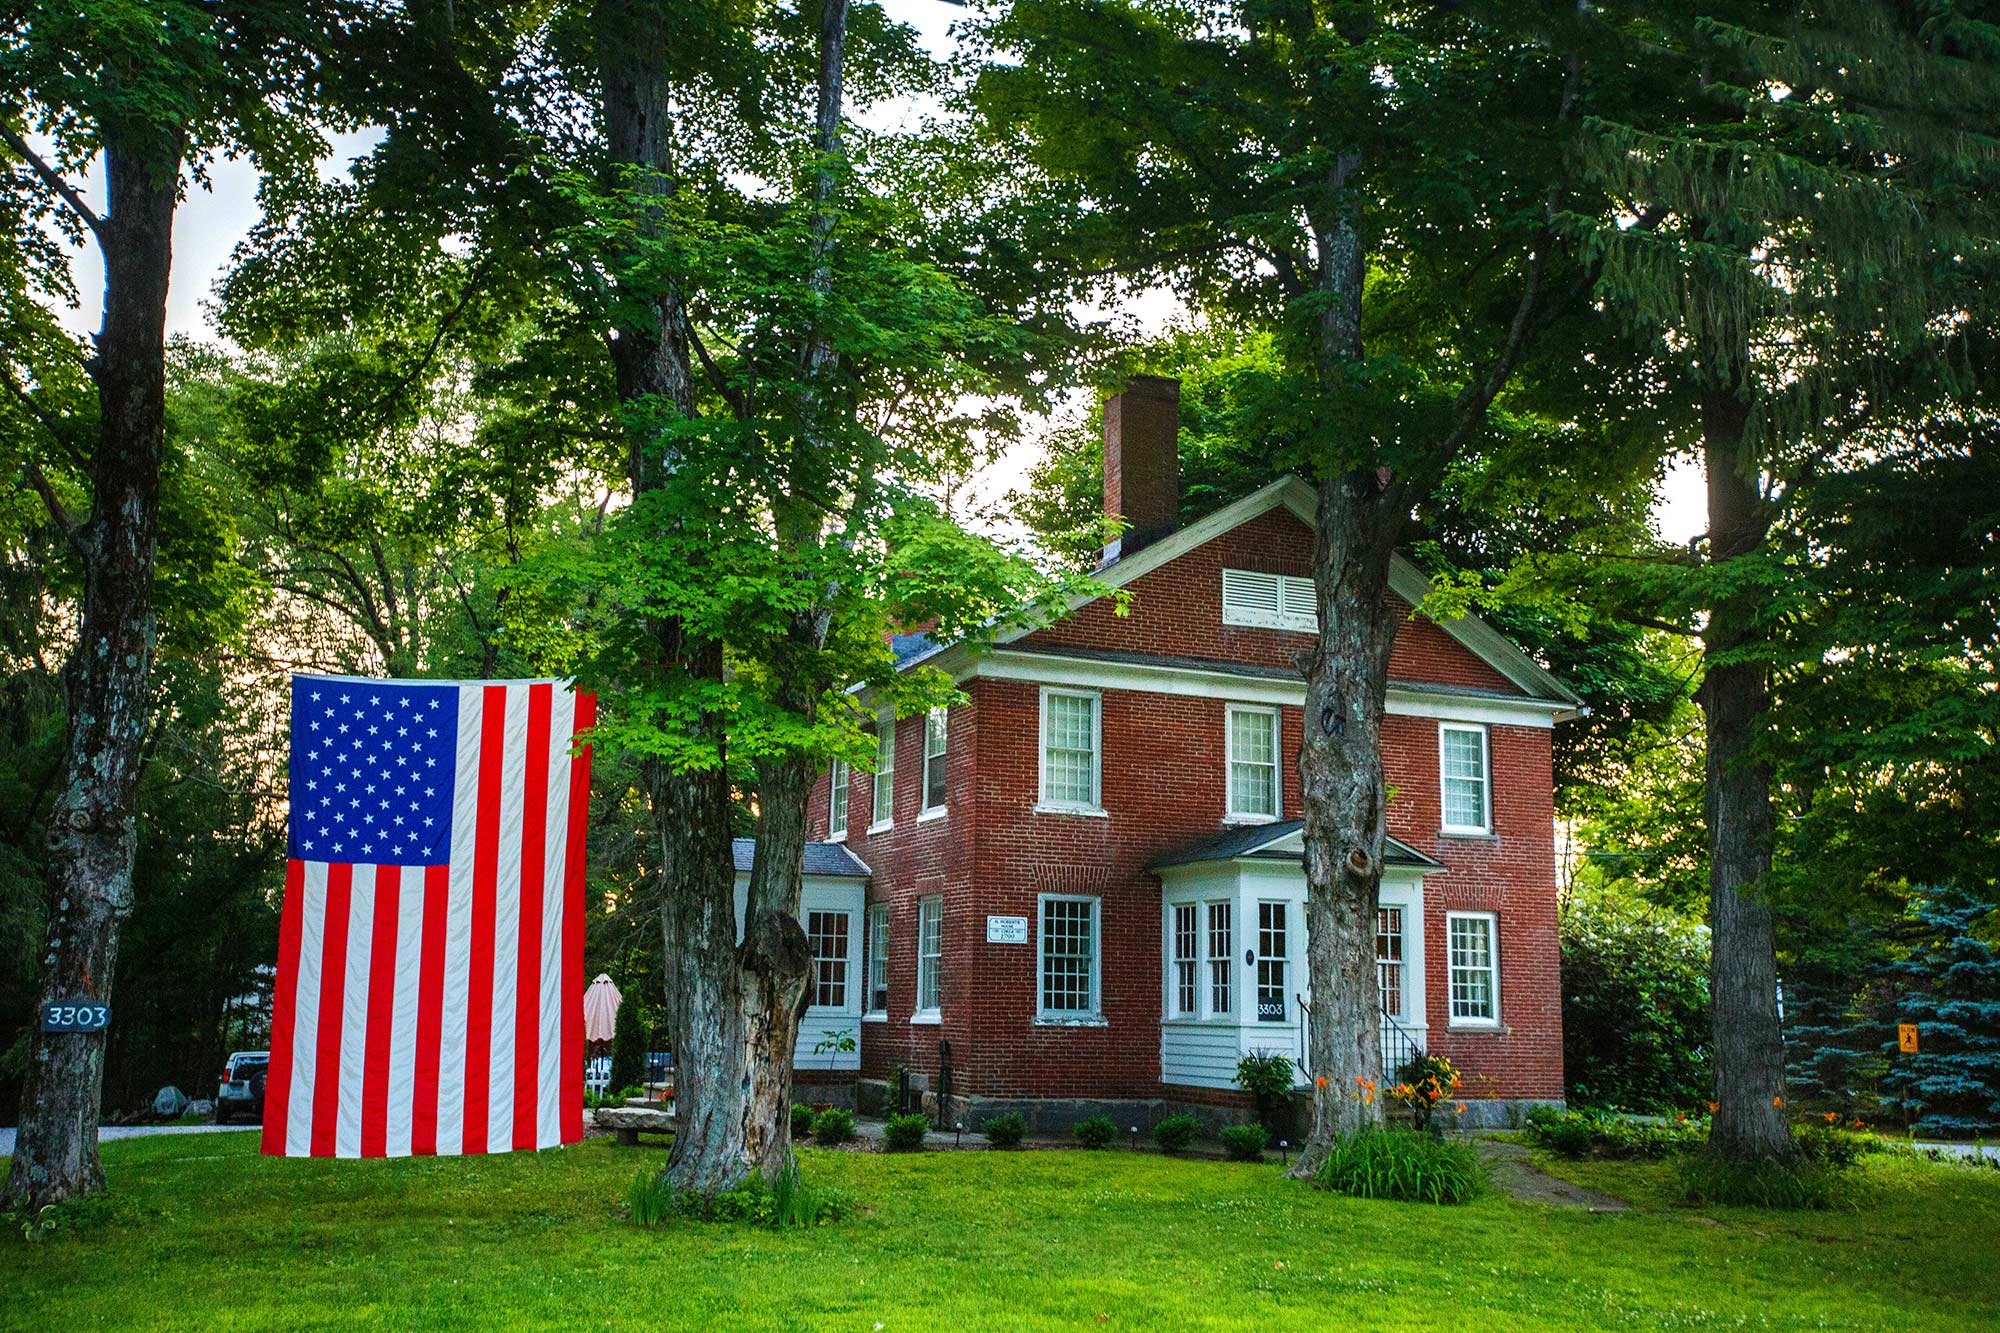 1799 House, Bakersville, CT - 7/3/15